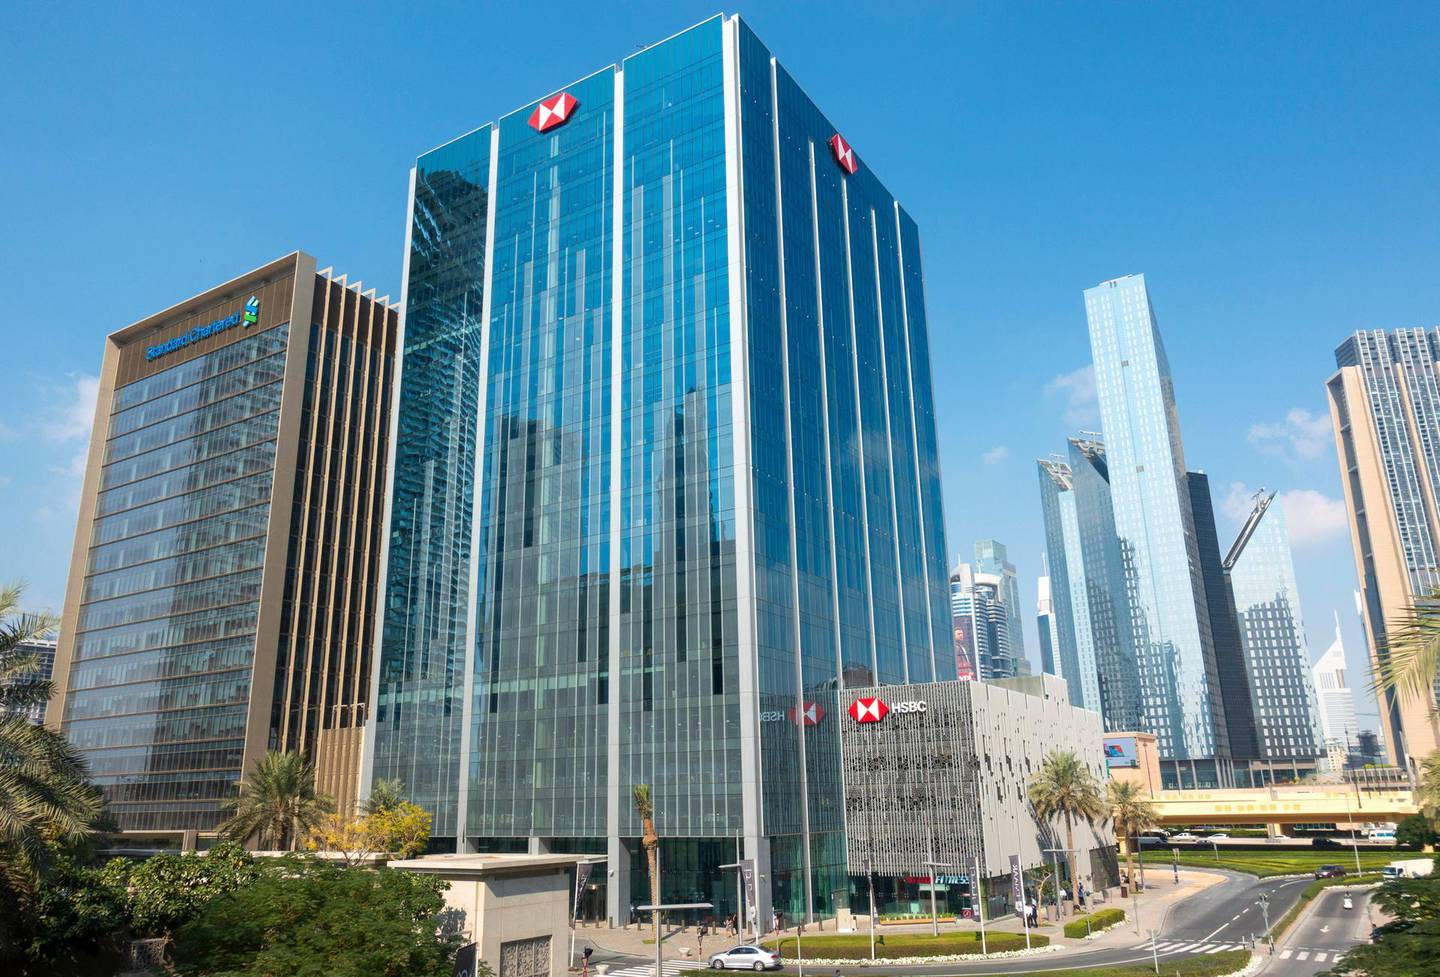 R9FTF2 Office buildings at Emaar Square business district in Downtown Dubai, United Arab Emirates